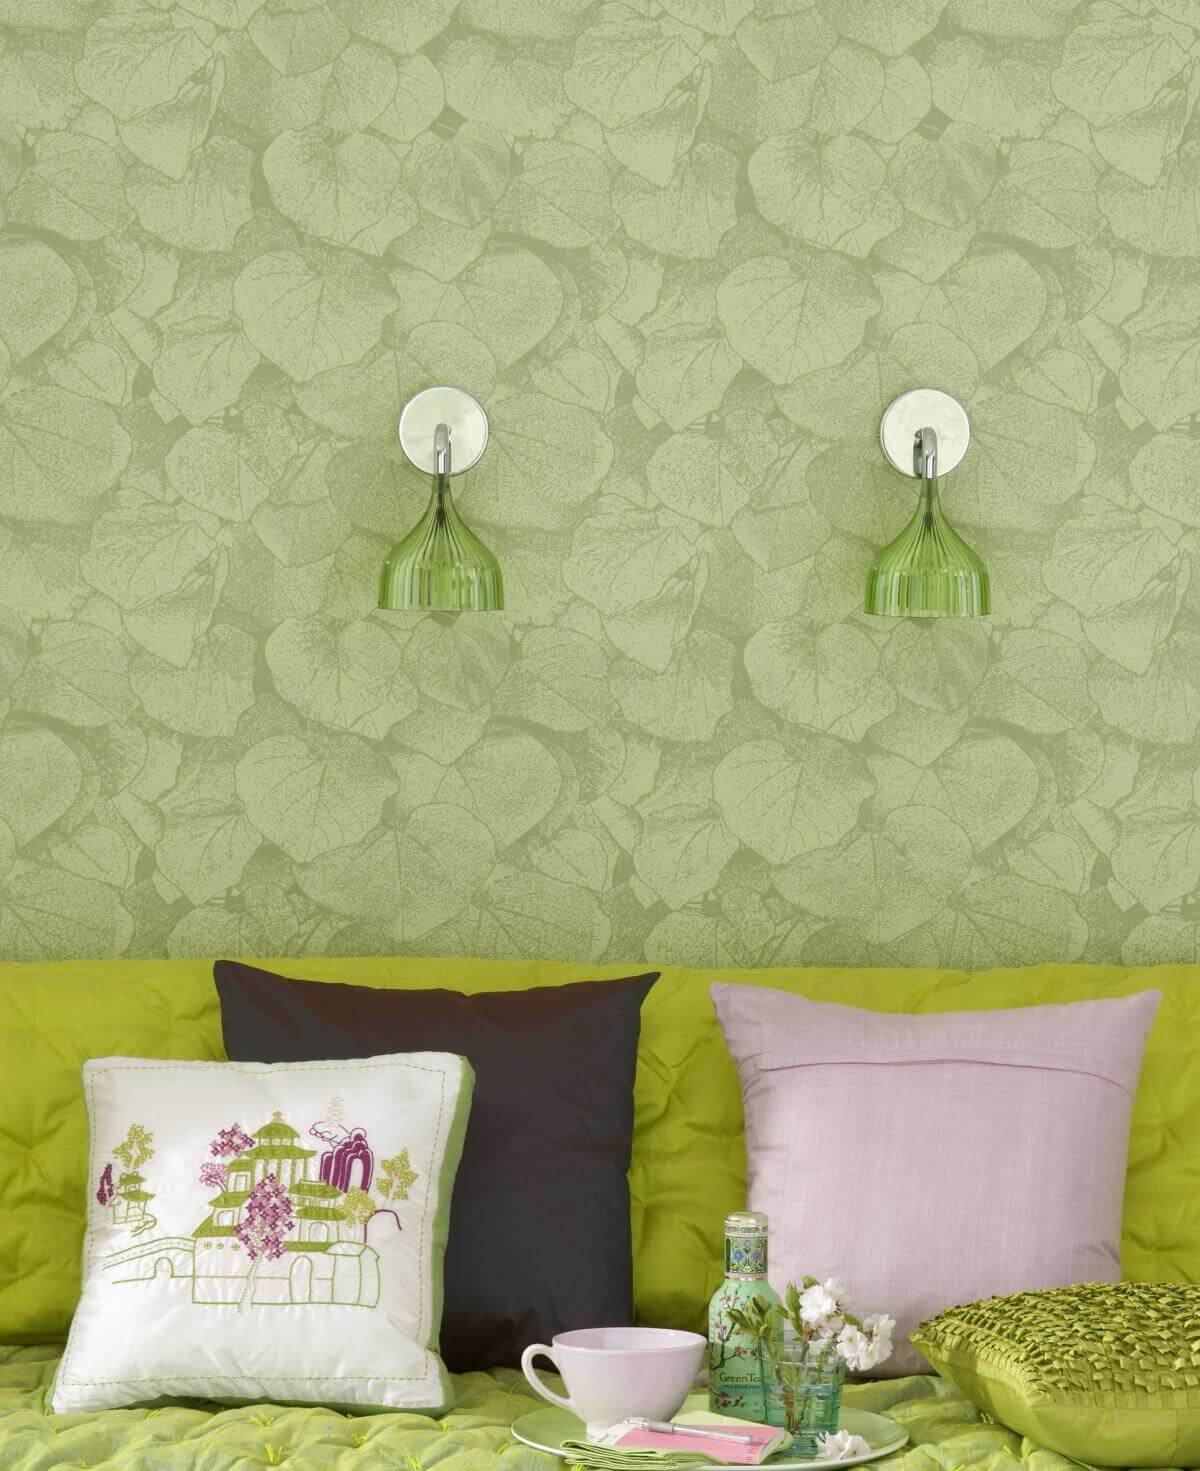 Pleasing green color with structure on the non-woven wallpaper